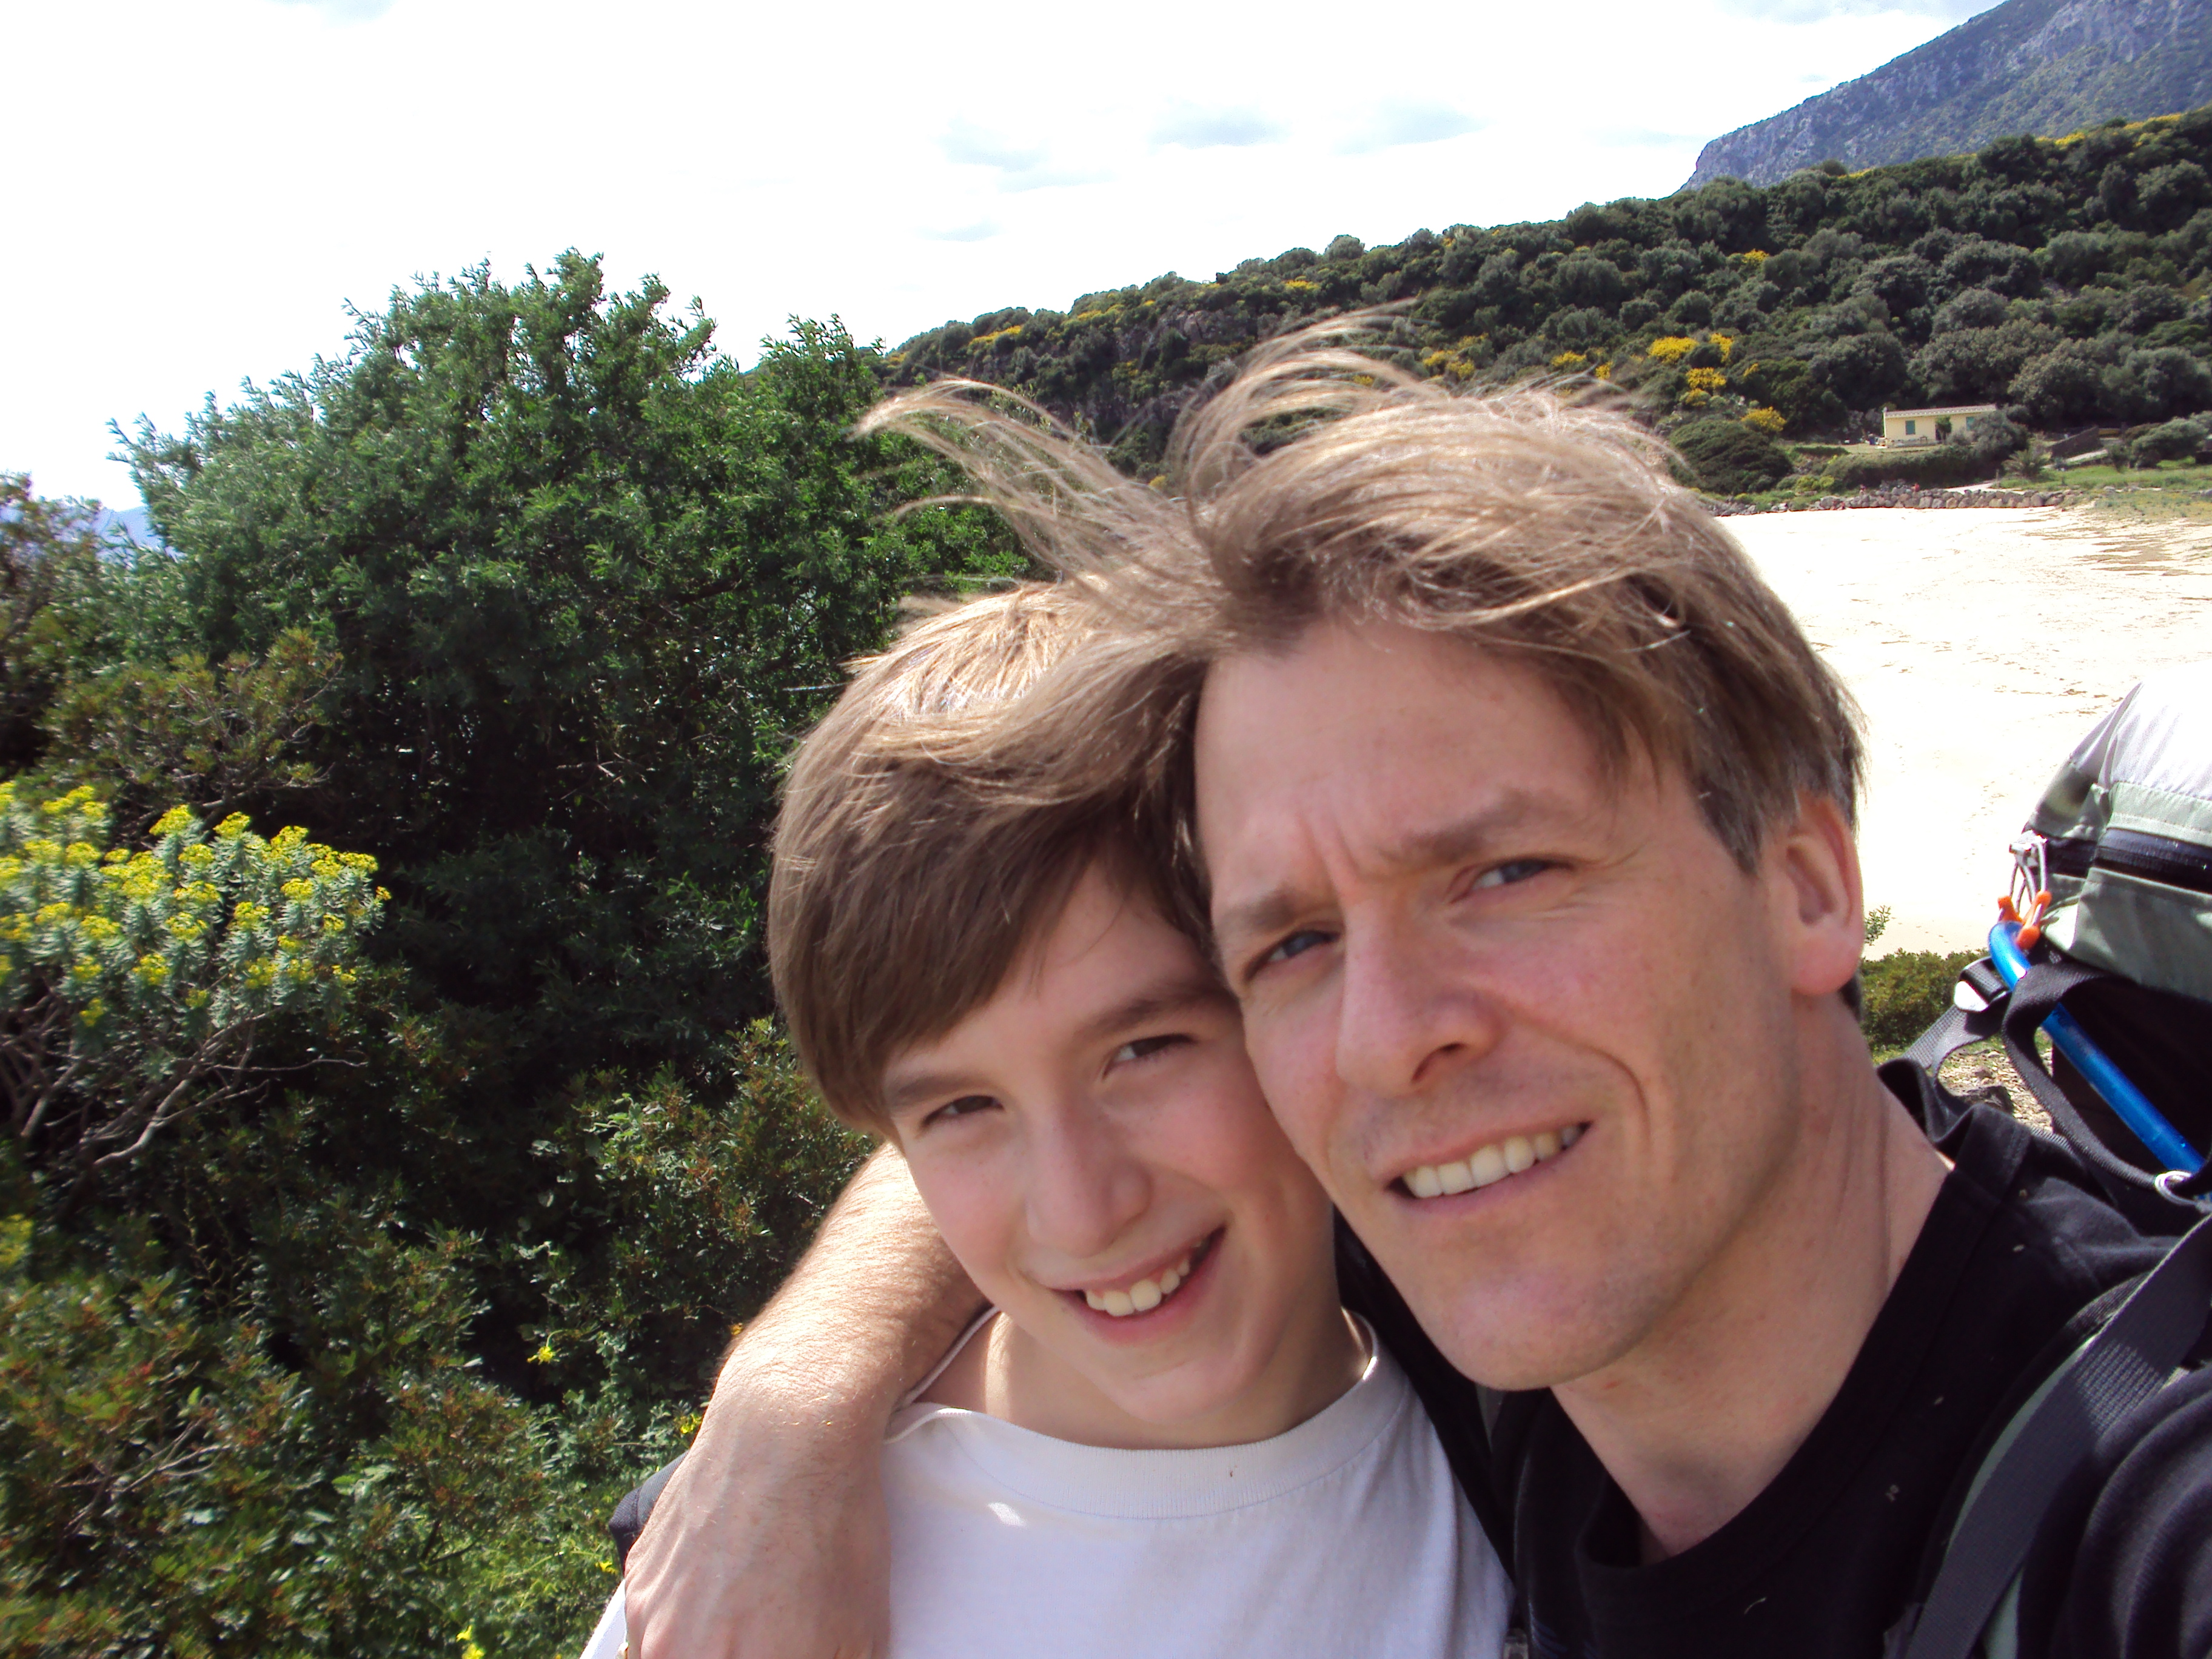 Father and son in Sardinia